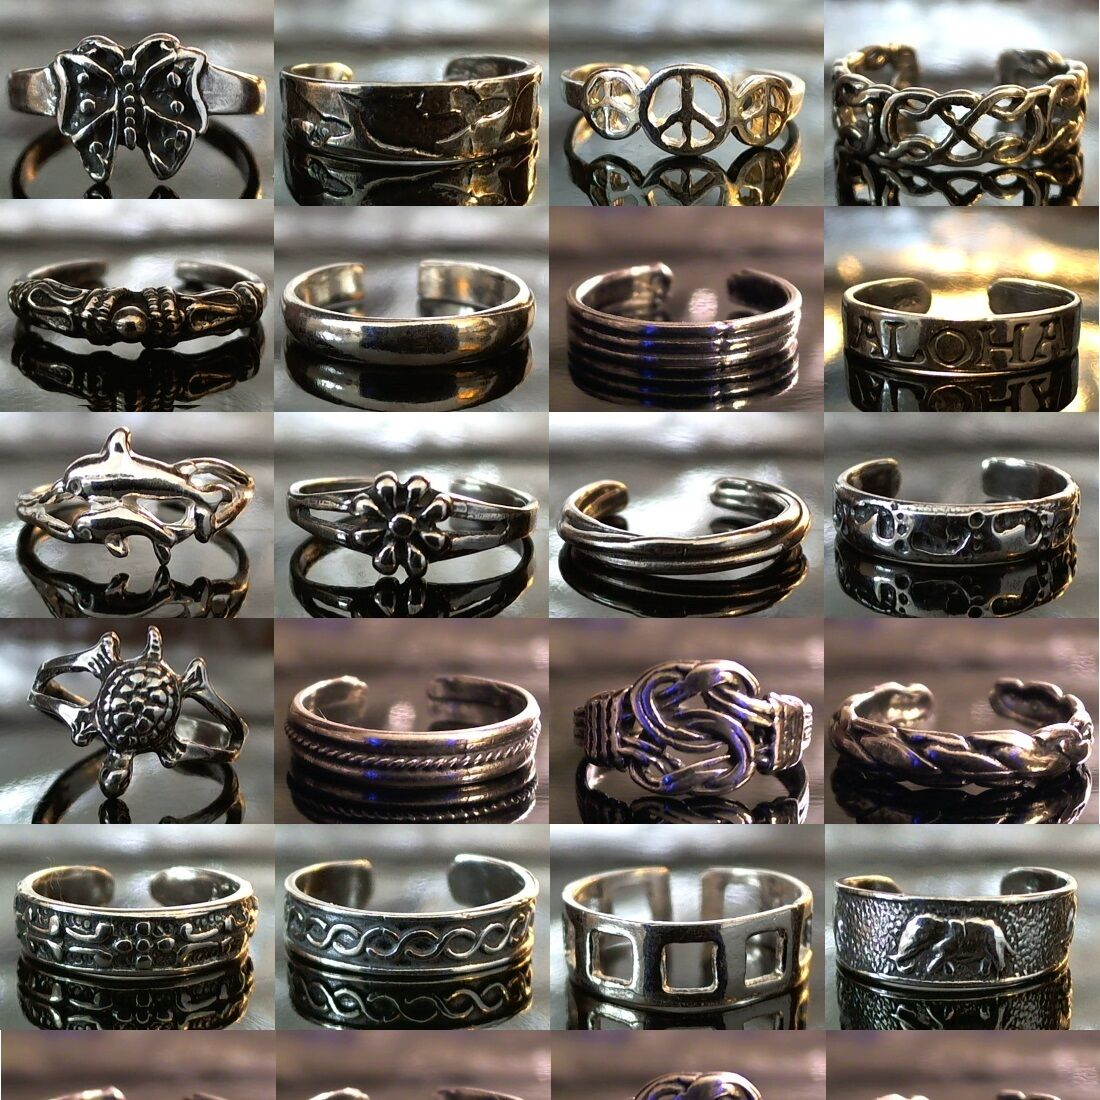 Toe Rings - 160 Unique Designs 100% Solid 925 Sterling Silver - Adjustable Size!